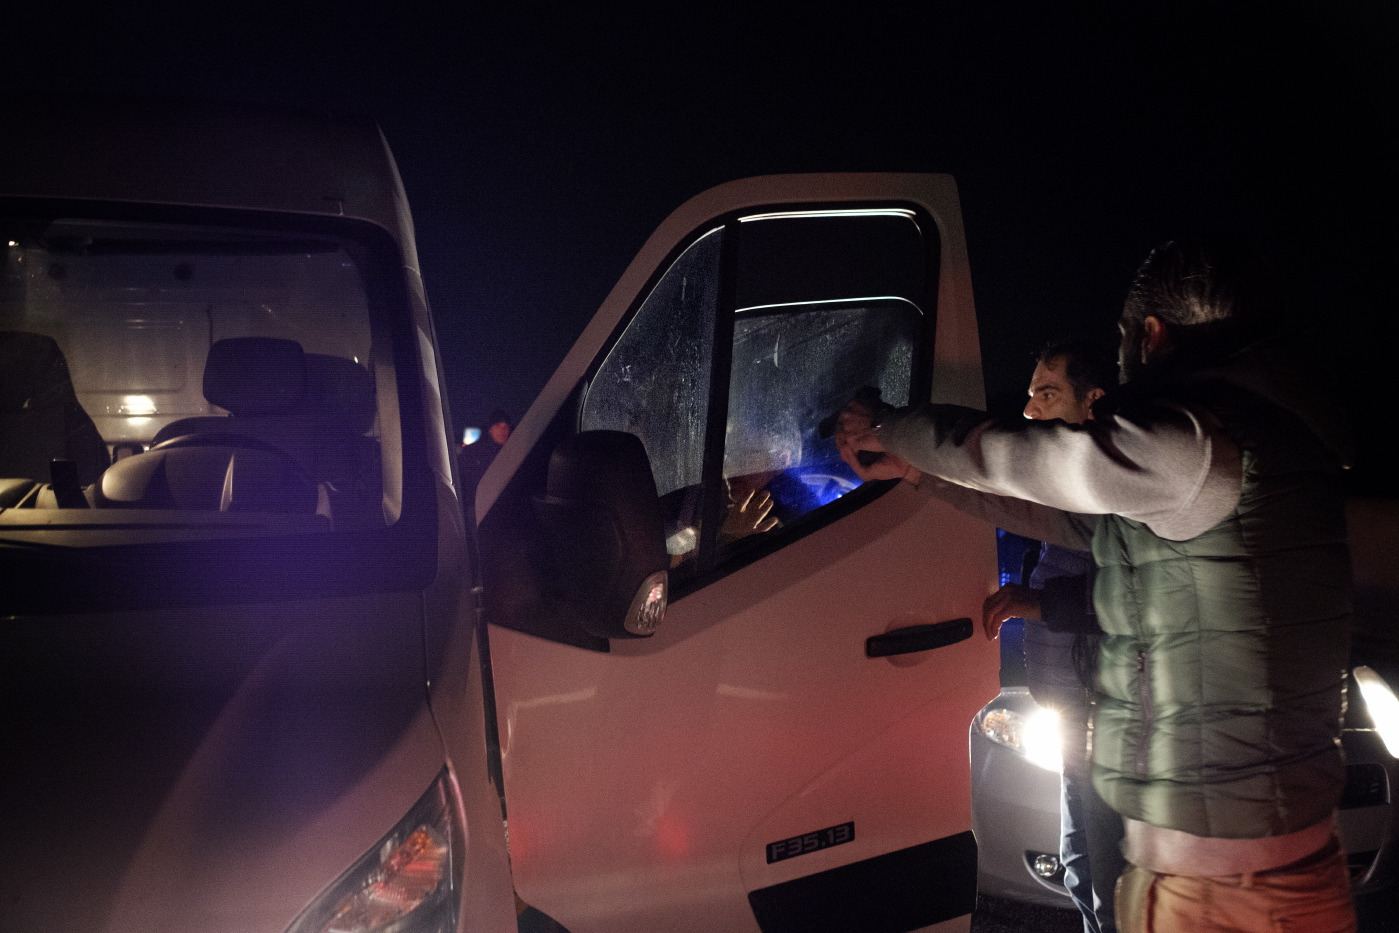 Some members of the Counter-narcotics Group (G.O.A.) in the tax unit of the Lecce financial police, led by the commander of the Organized Crime Investigation Group (G.I.C.O.), are seen pointing their guns at a van driver suspected of carrying marijuana. Carovigno (Brindisi), Italy 2016. © Matteo Bastianelli